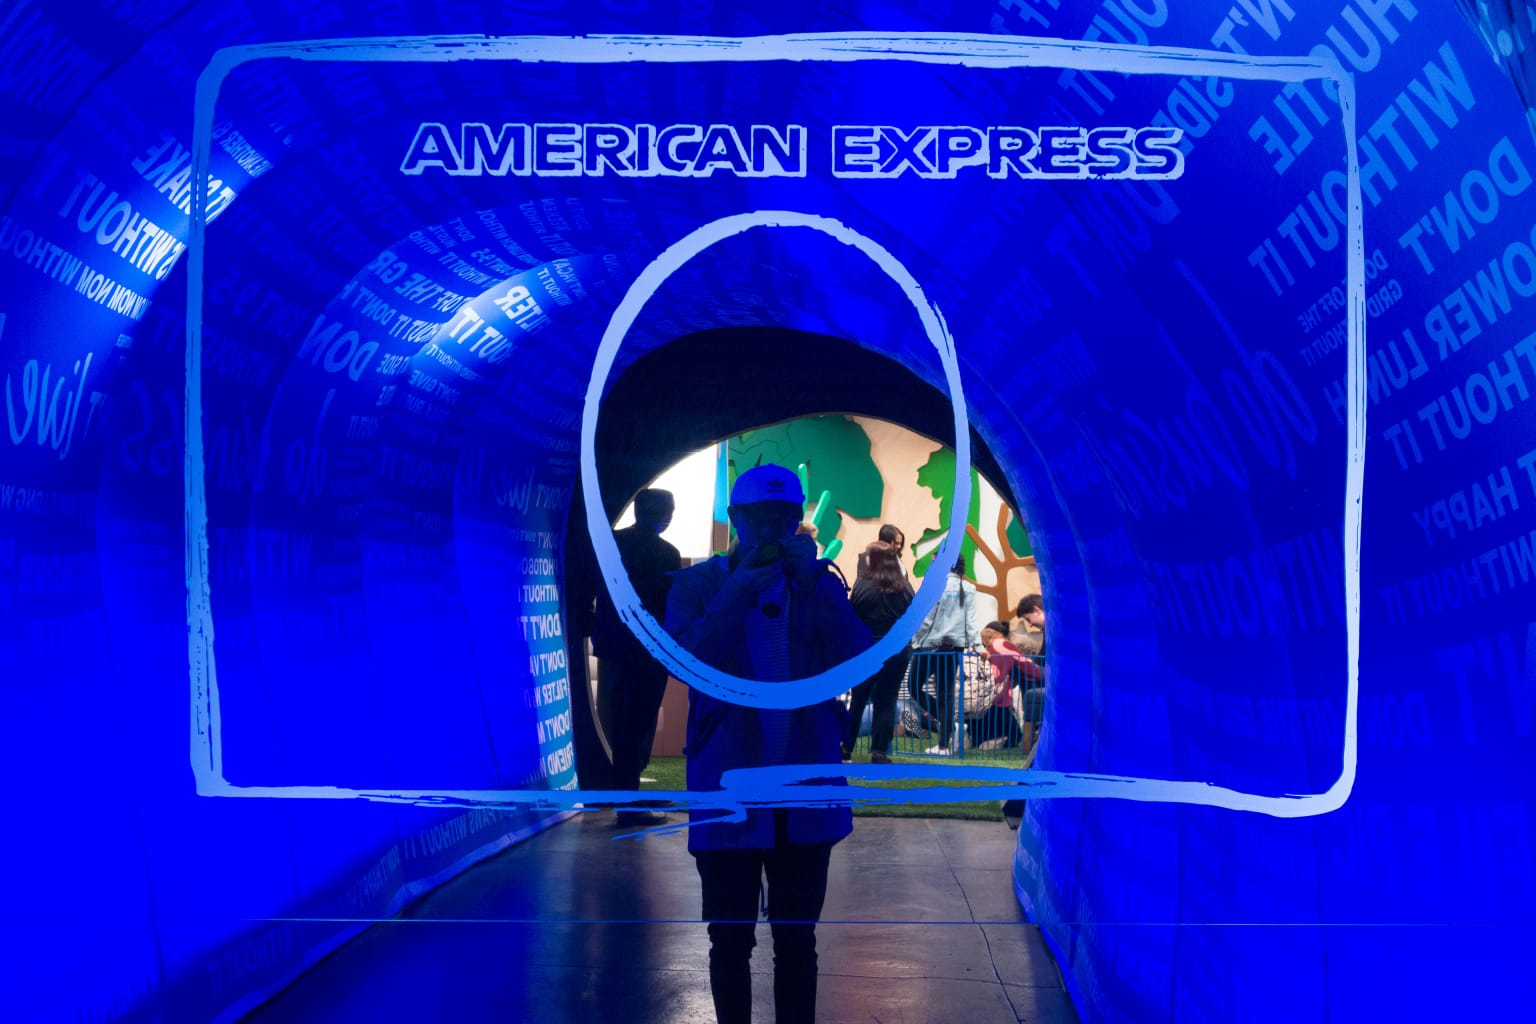 American Express Experience